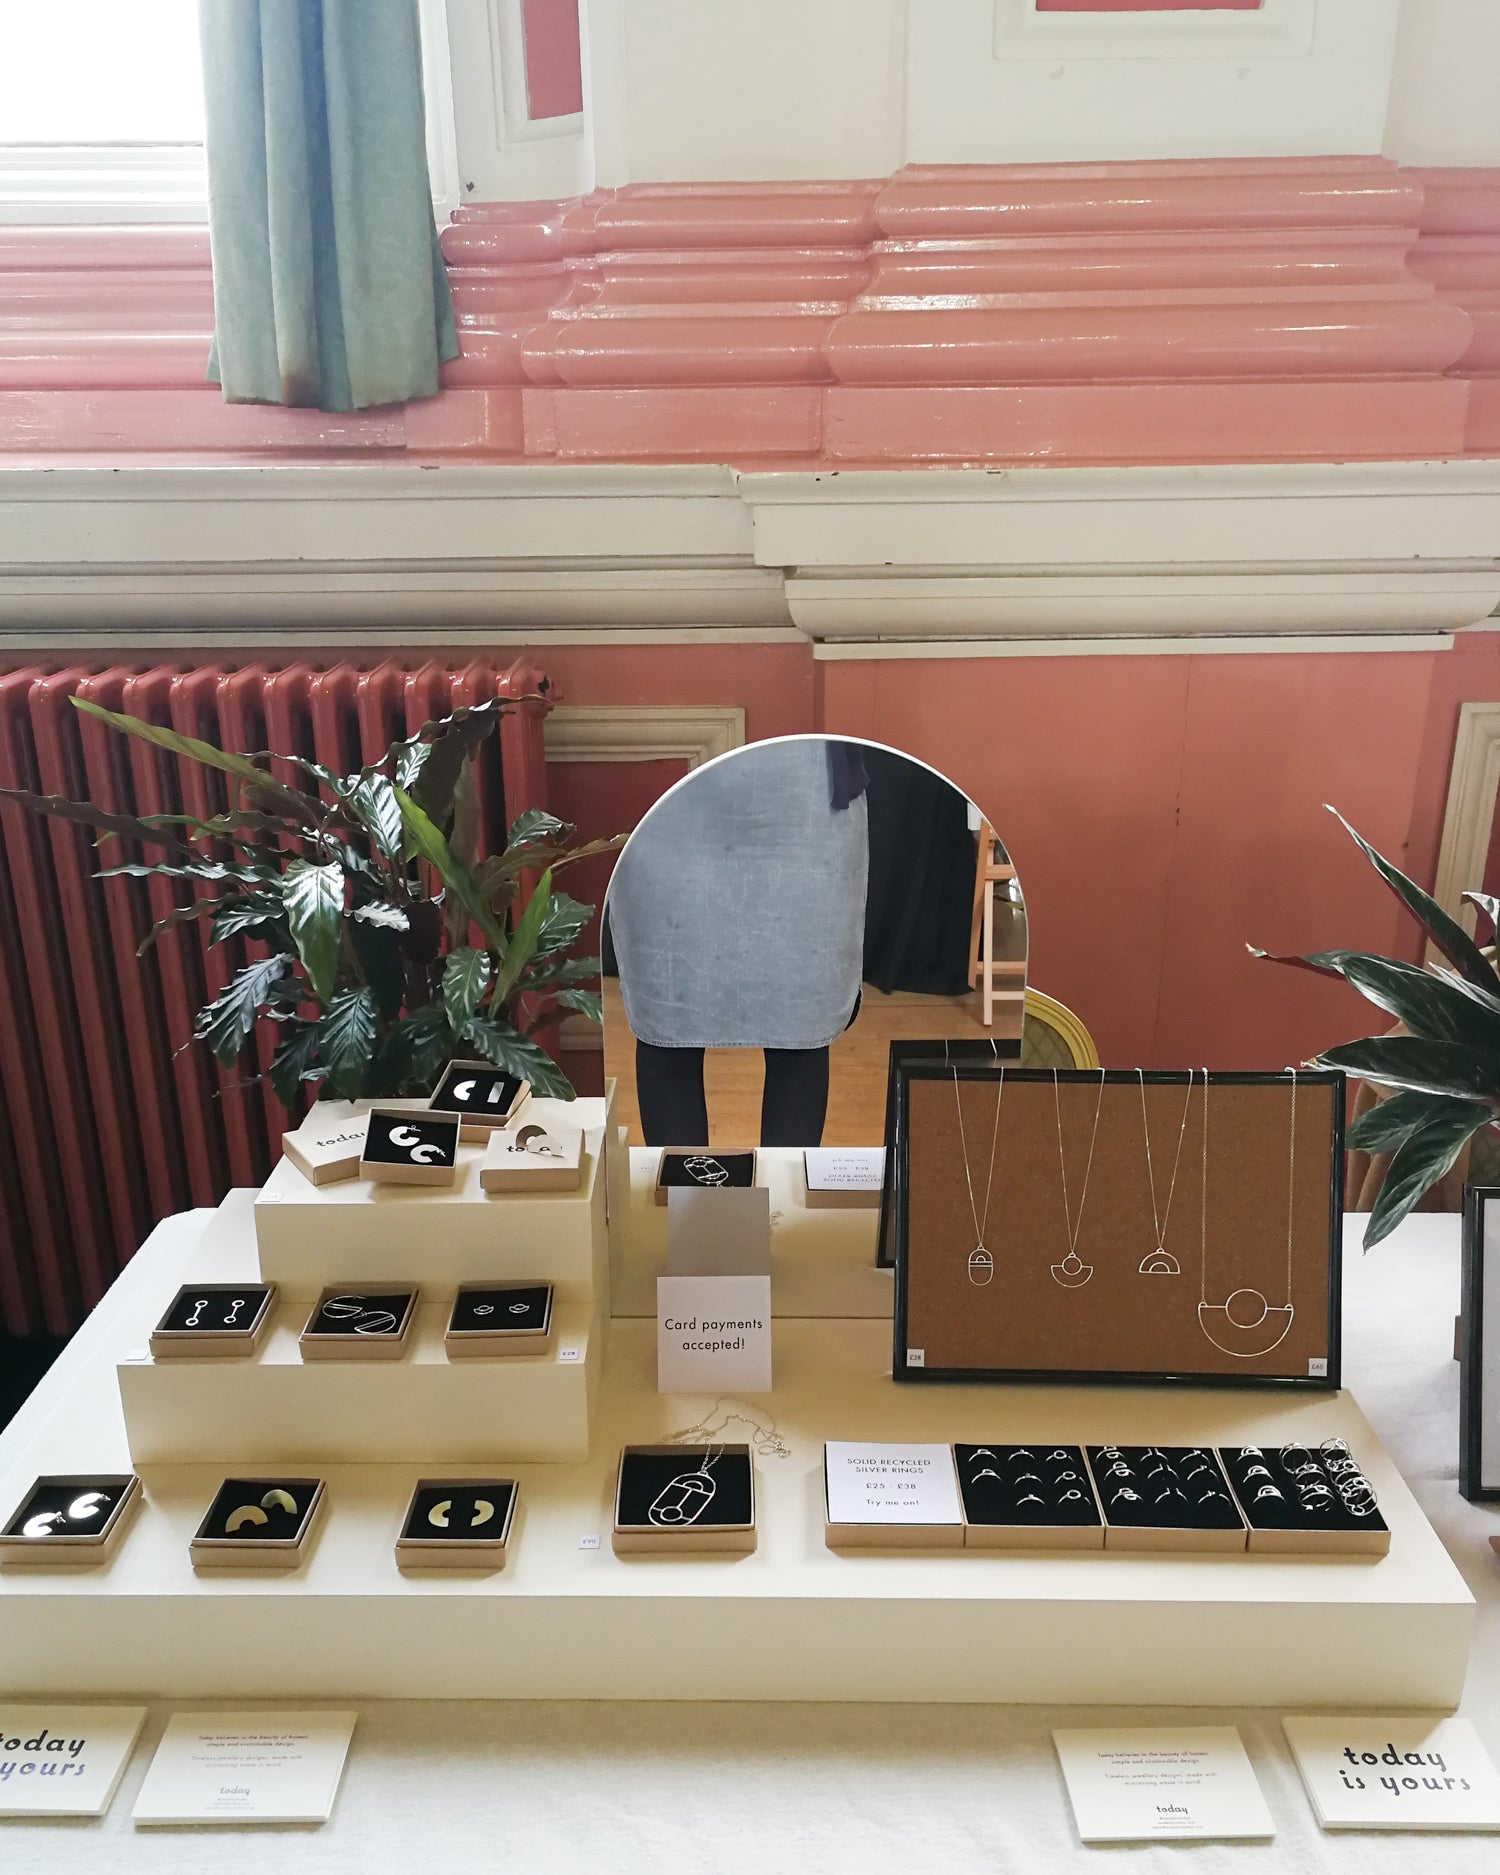 Today jewellery craft fair set-up at Saltaire Makers Market